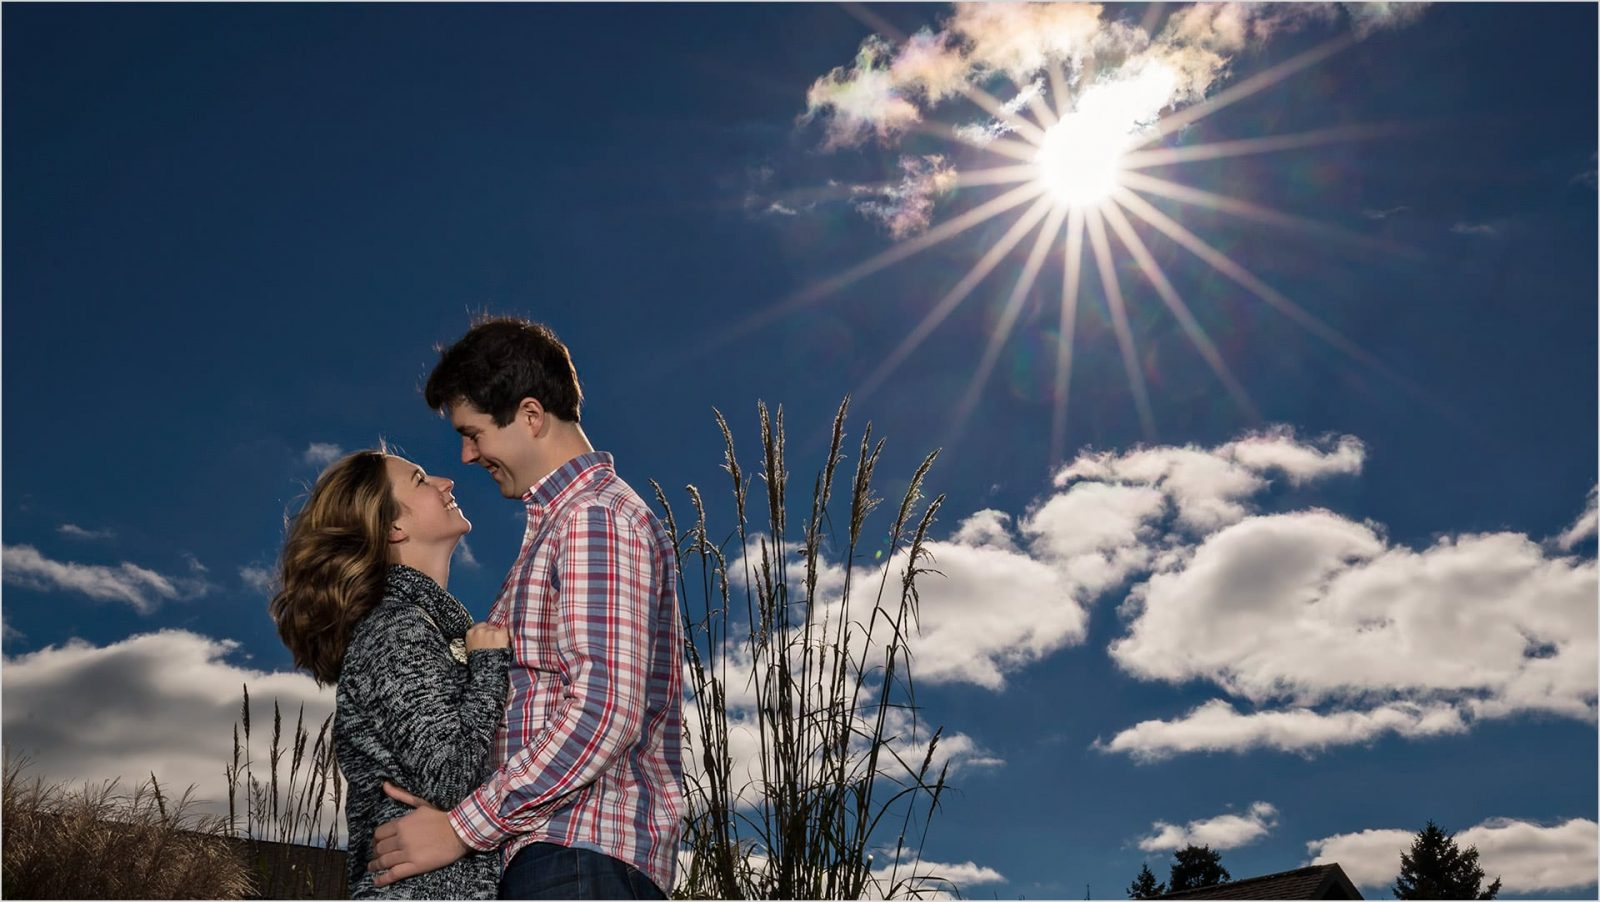 Cox Arboretum Dayton Engagement photos, sunburst